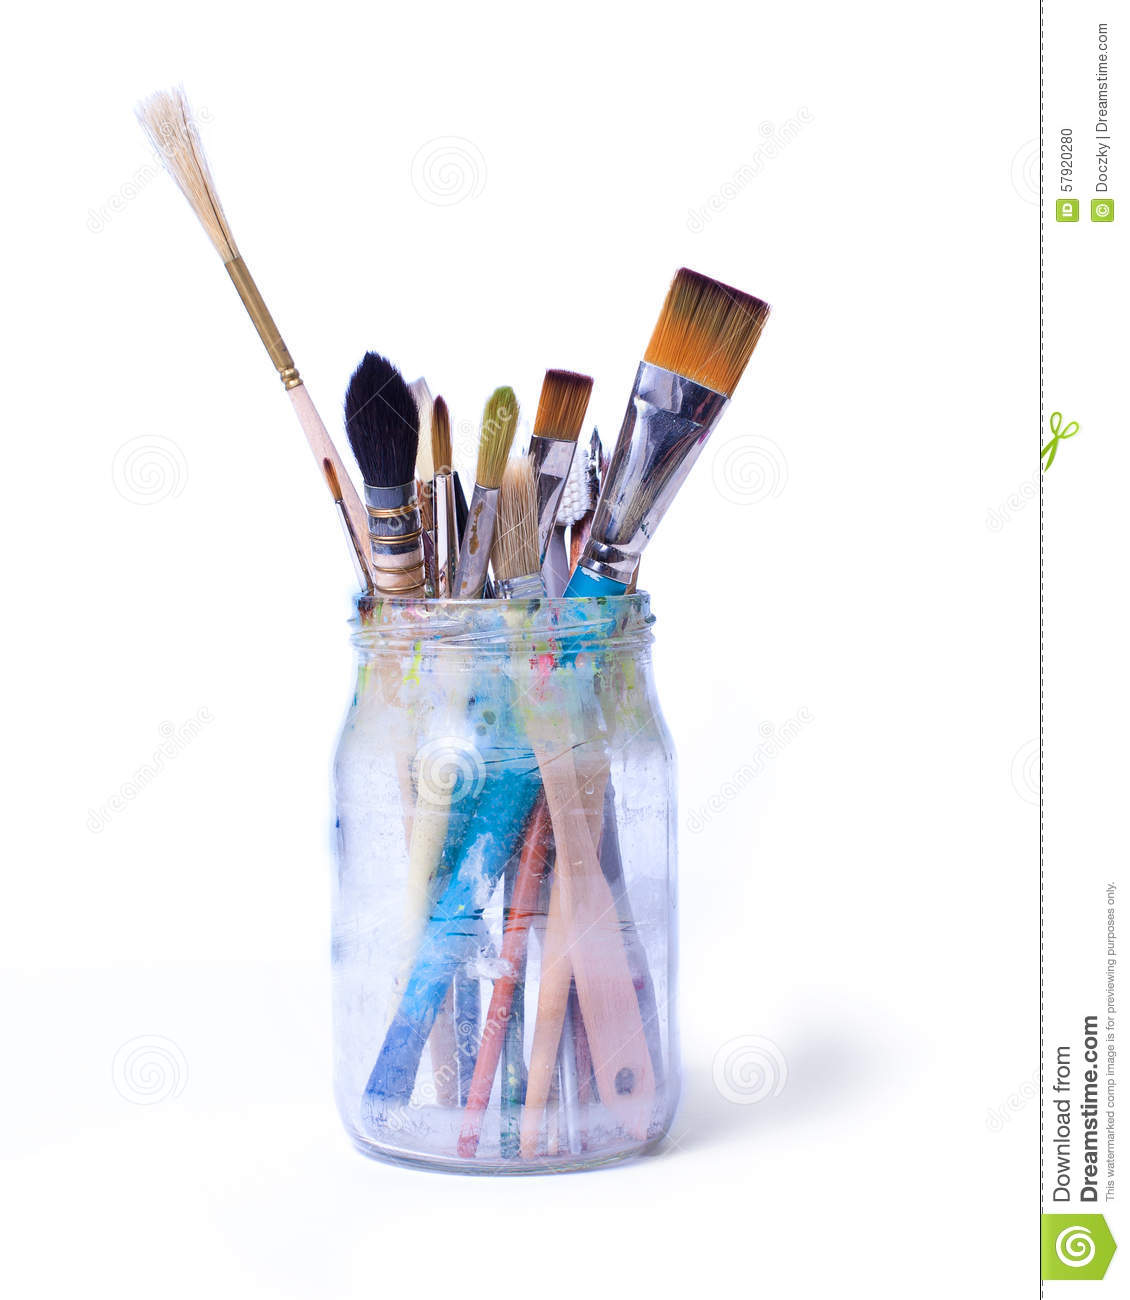 Brushes In A Jar Stock Photo Image 57920280